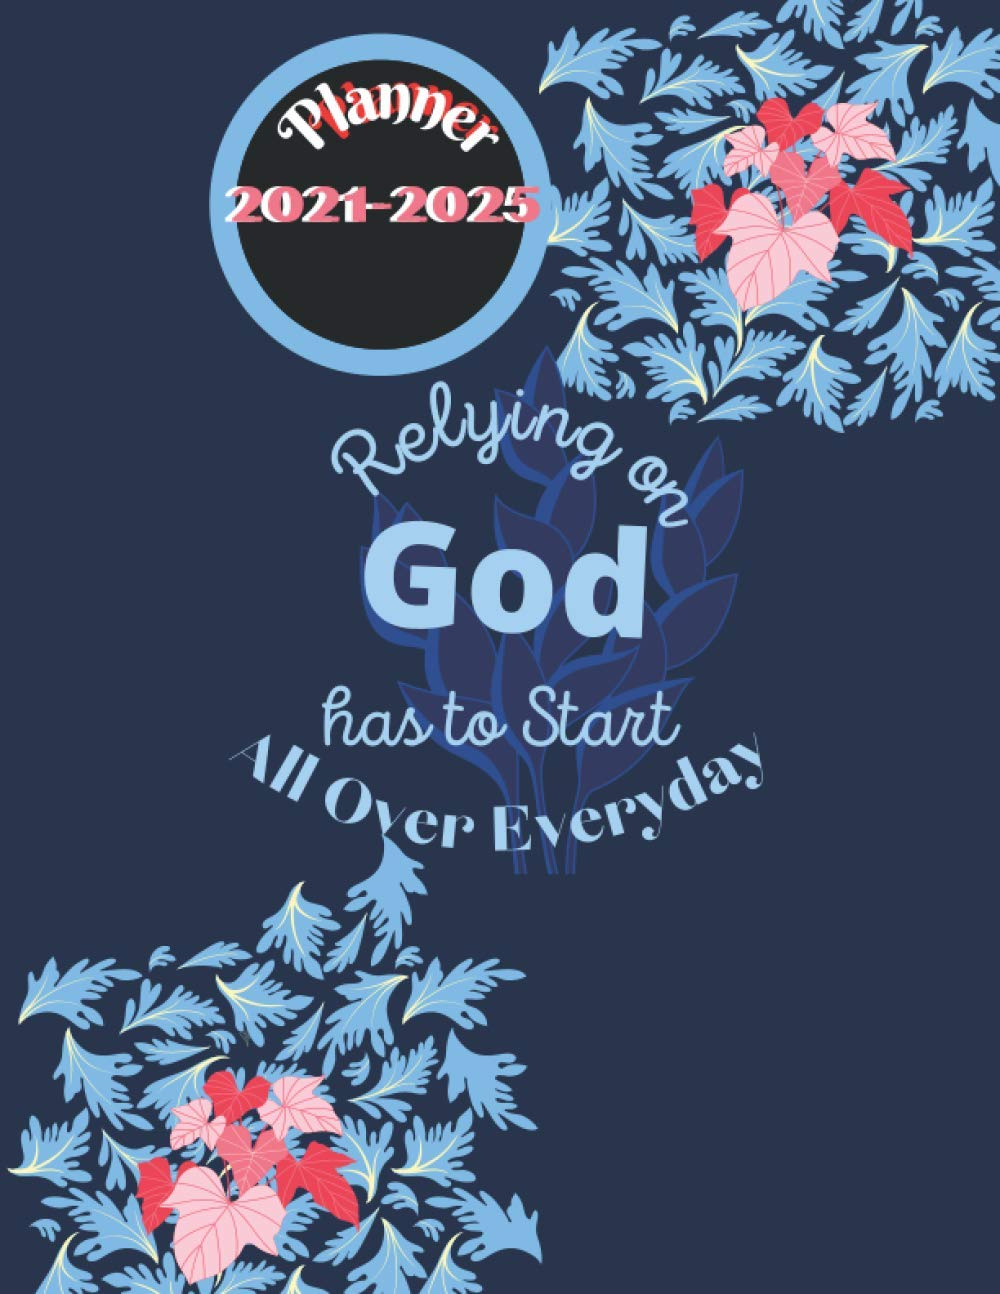 Relying on God has to Start All Over Everyday: 5 Year Planner 2021-2025 Christian will be useful to decorate your daily life beautifully | Best Course ... Designed Personal and Family Planner